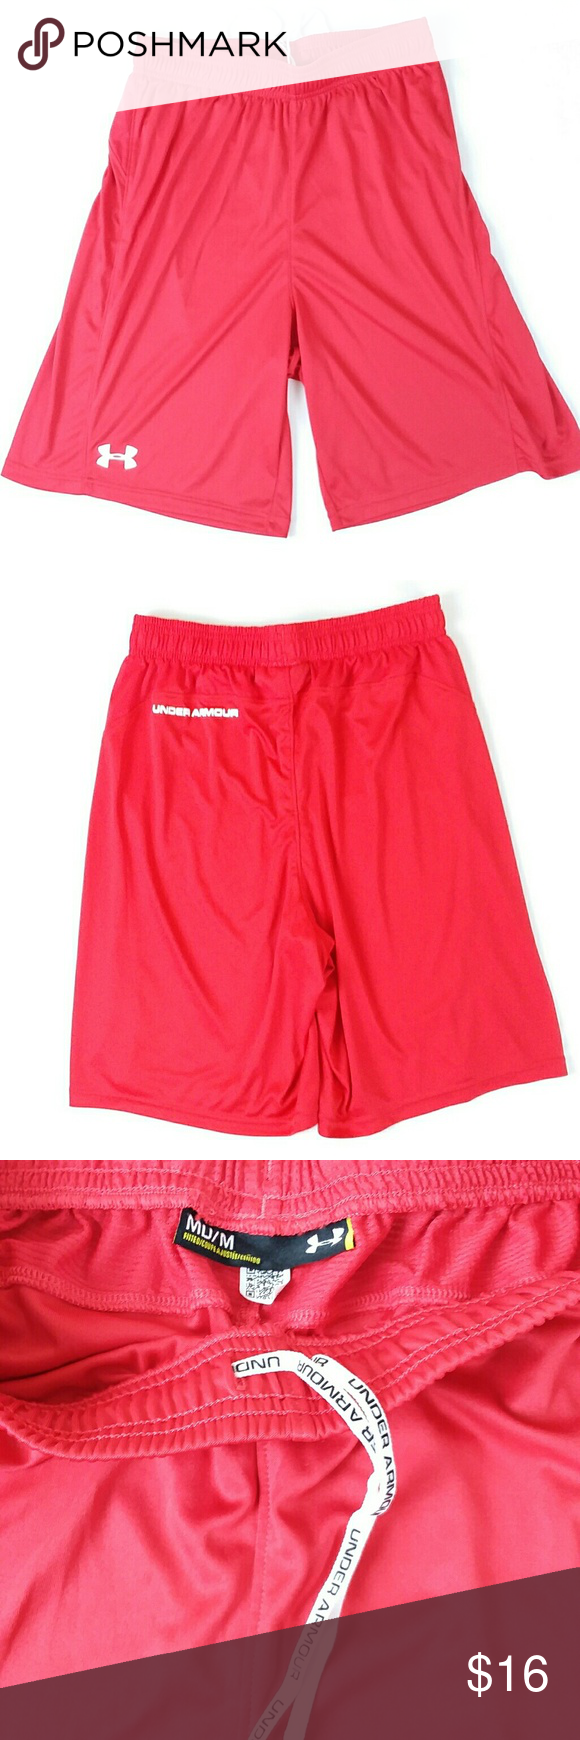 016c17af3 Under Armour Men's Red Drawstring Basketball Athletic Shorts. They are loose  fit and stretch. They wick sweat and dry fast. Size M Measurements ...